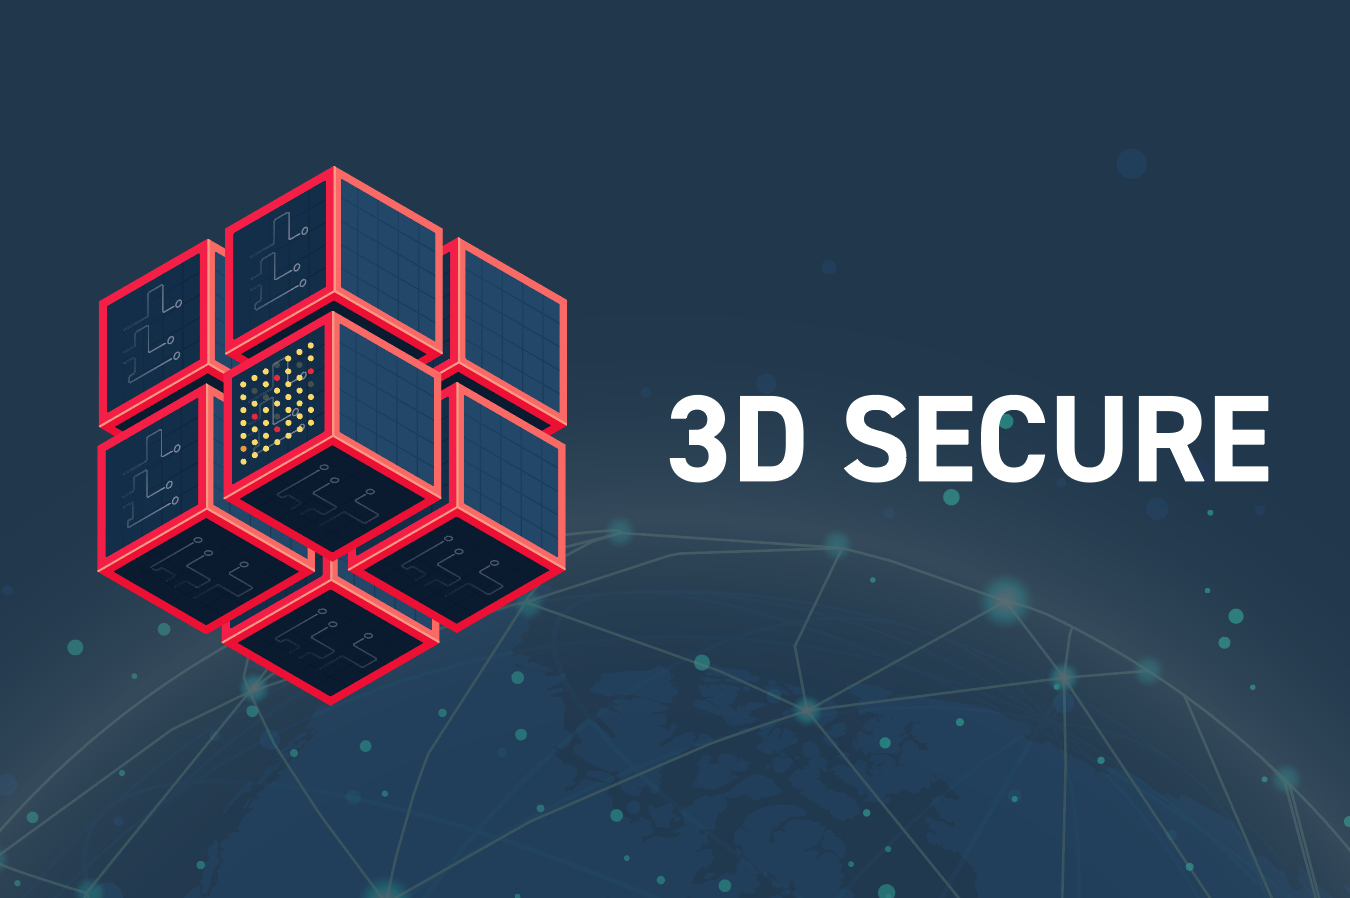 3D secure merchant information required